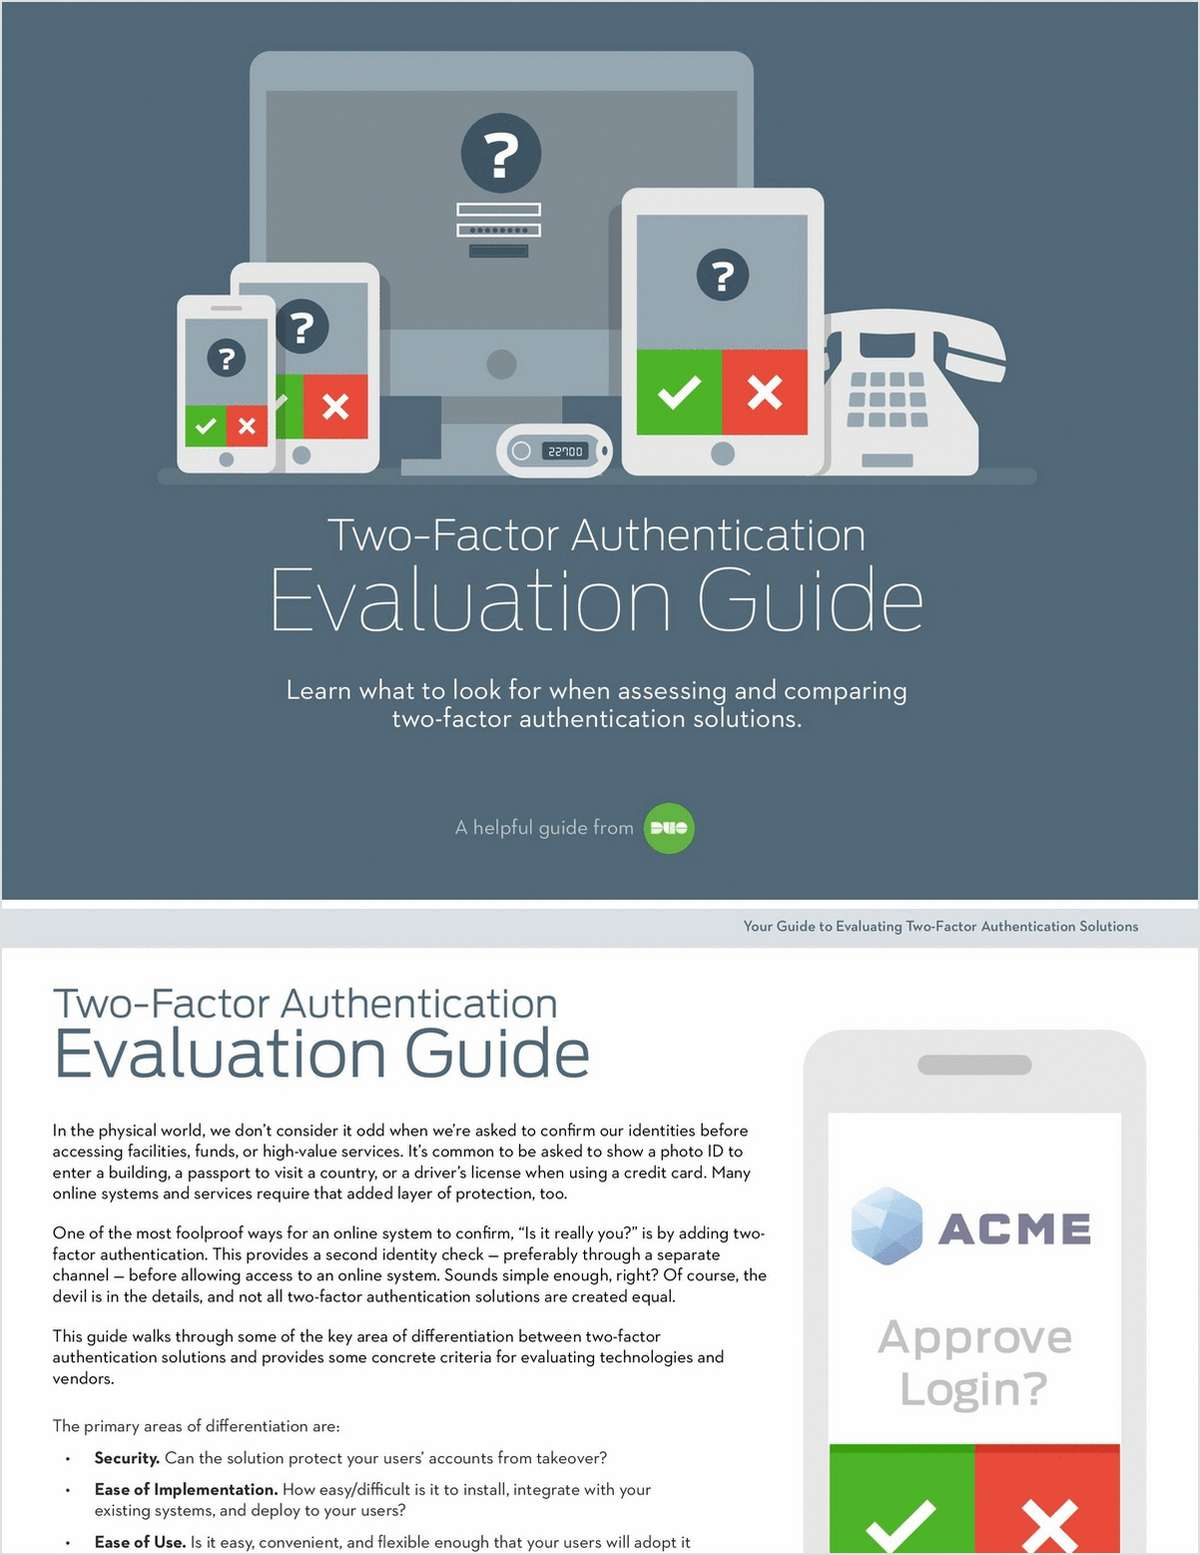 Two-Factor Authentication Evaluation Guide